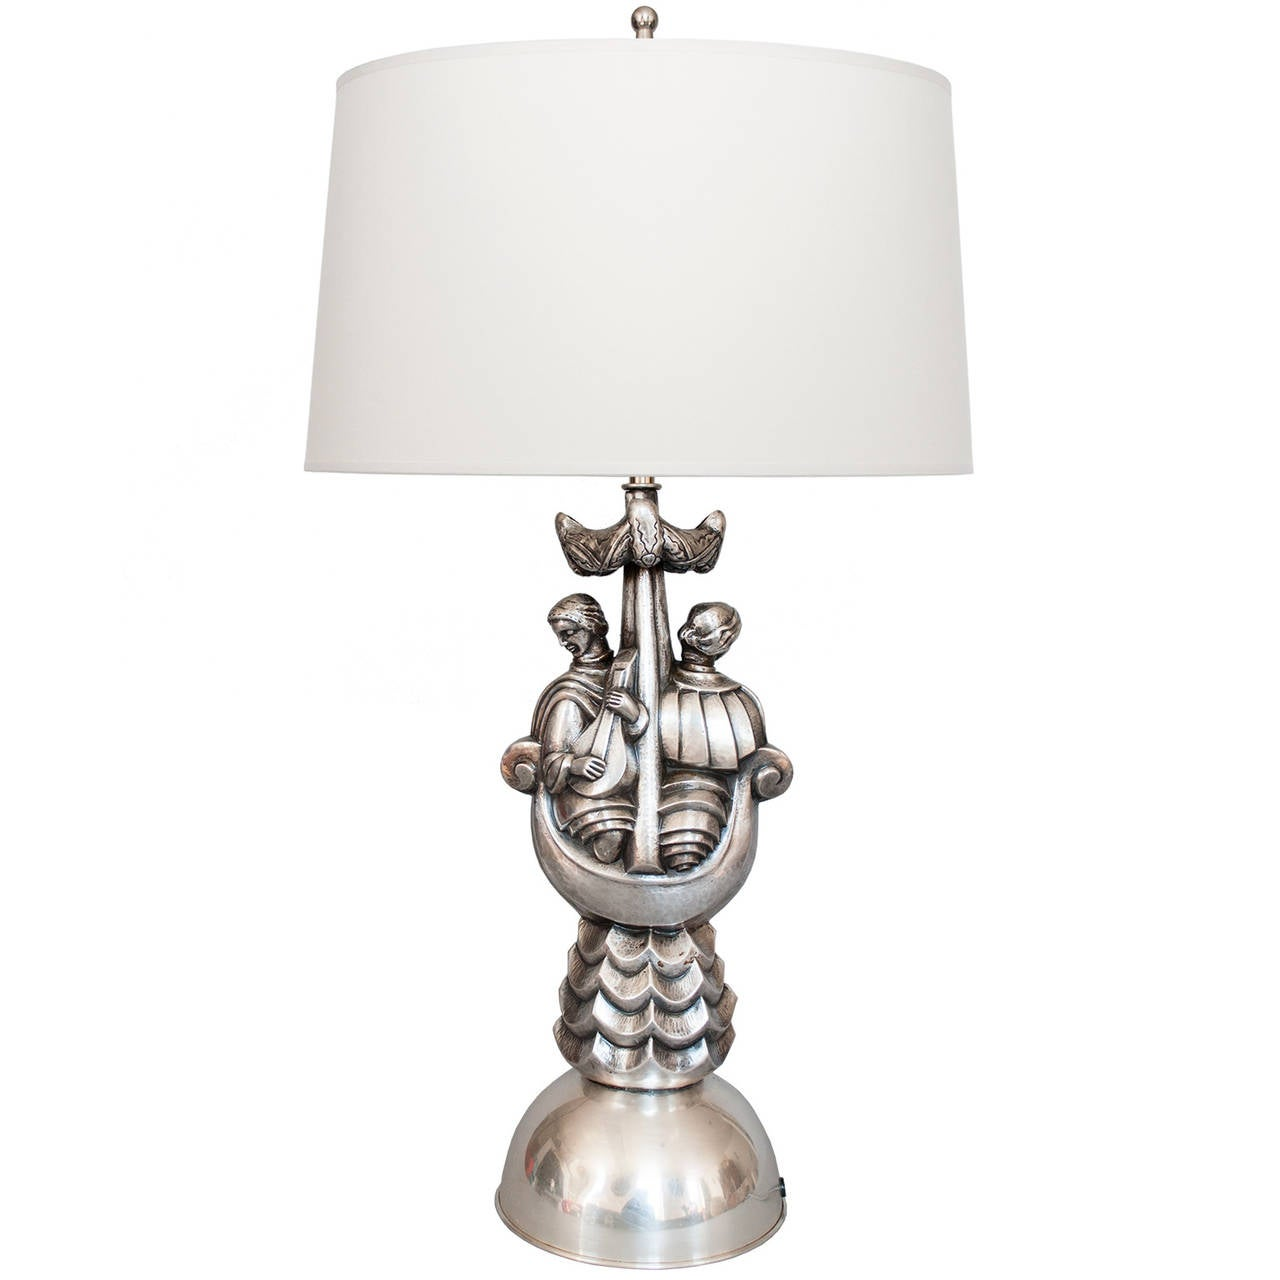 Swedish Art Deco Silver Plate Table Lamp With Silk Shade